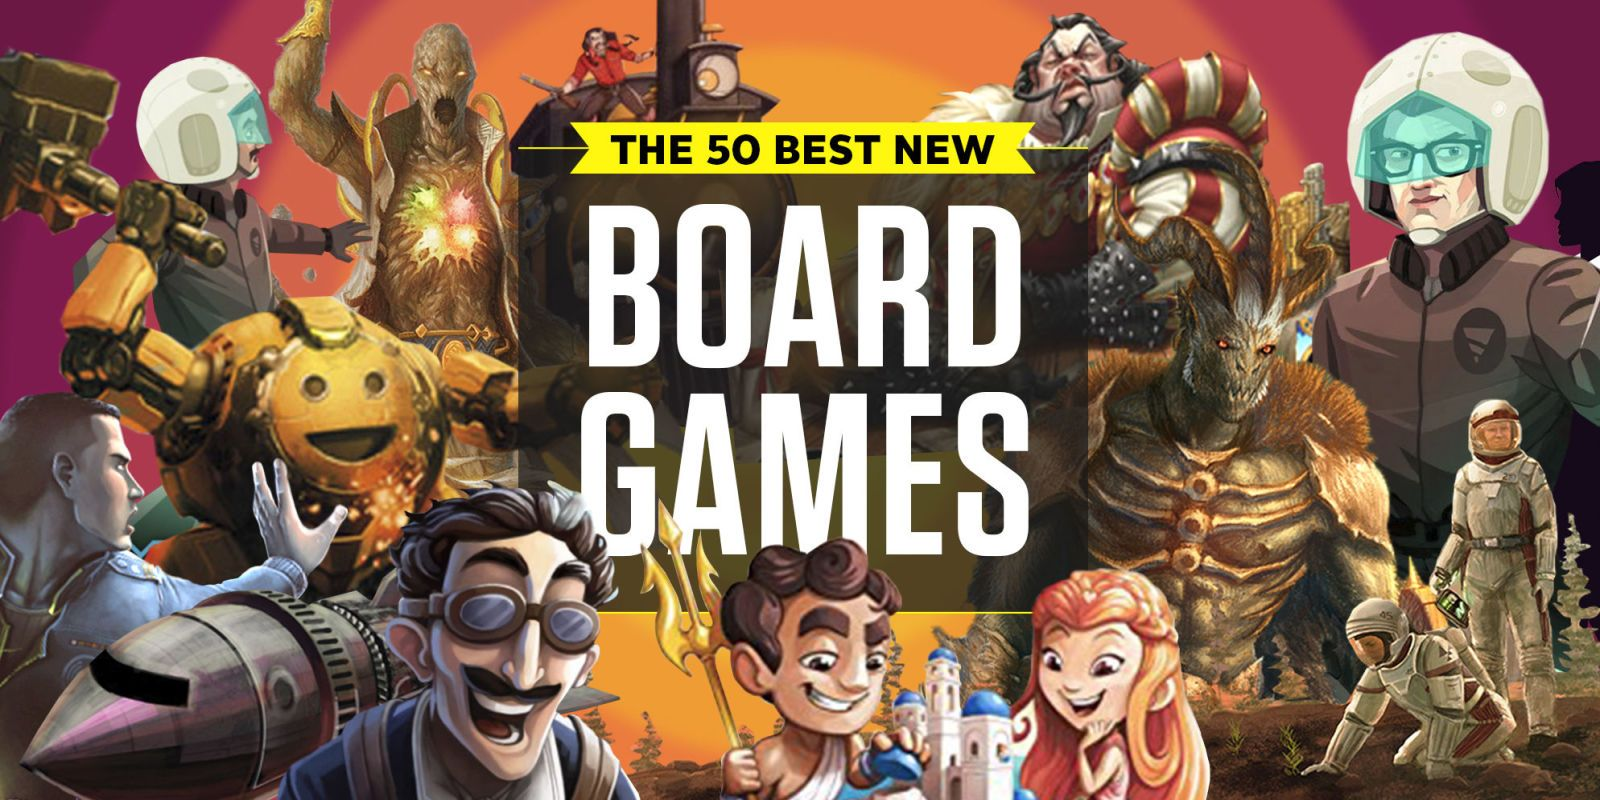 Sure, The Classic Board Games Like Monopoly, Risk, And Battleship Are Still  Great Fun. But The Number Of New Games Has Exploded In The Last Several  Years As ...